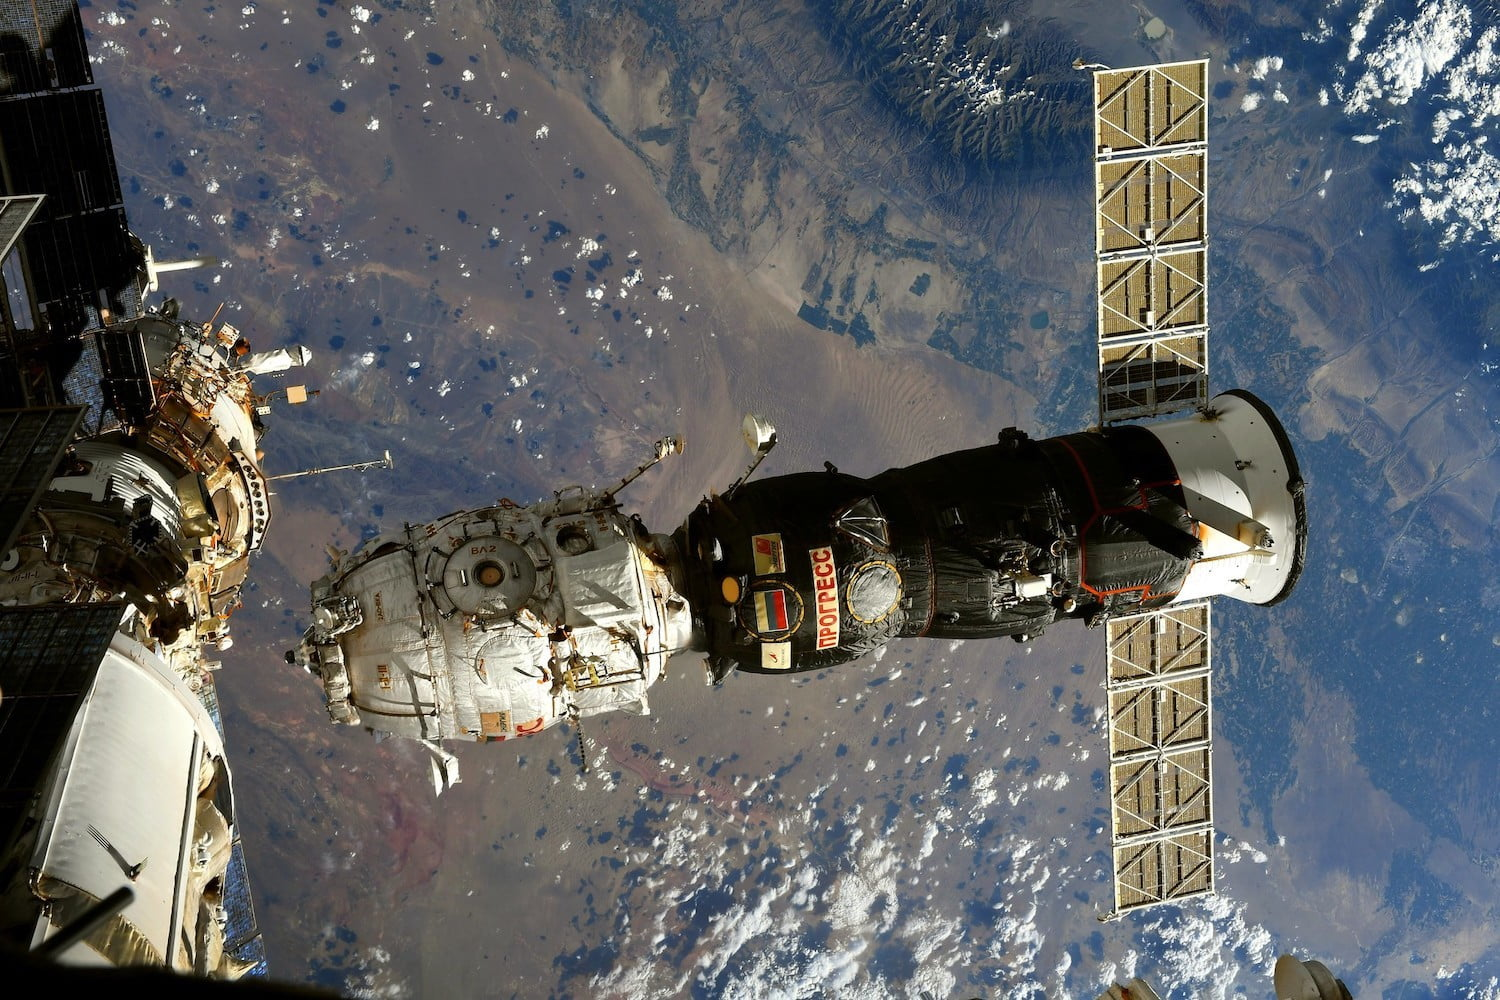 Russia's Pirs module departing the International Space Station after 20 years.